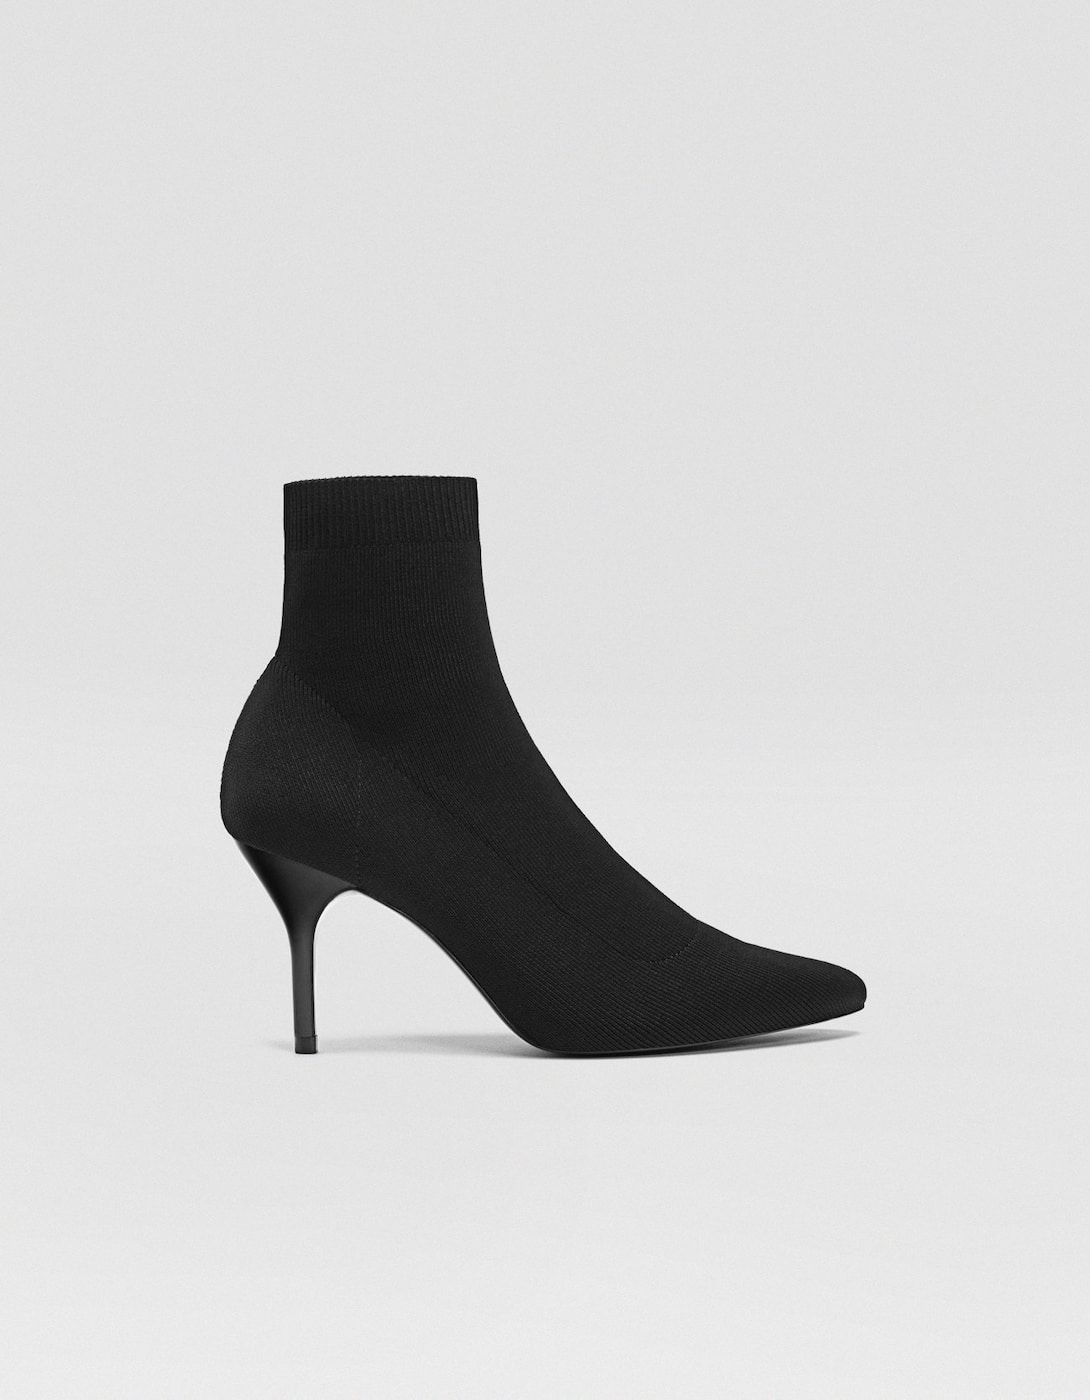 Black Fabric Stiletto Heel Ankle Boots Boots And Ankle Boots Stradivarius United Kingdom Boots Heels Stiletto Heels